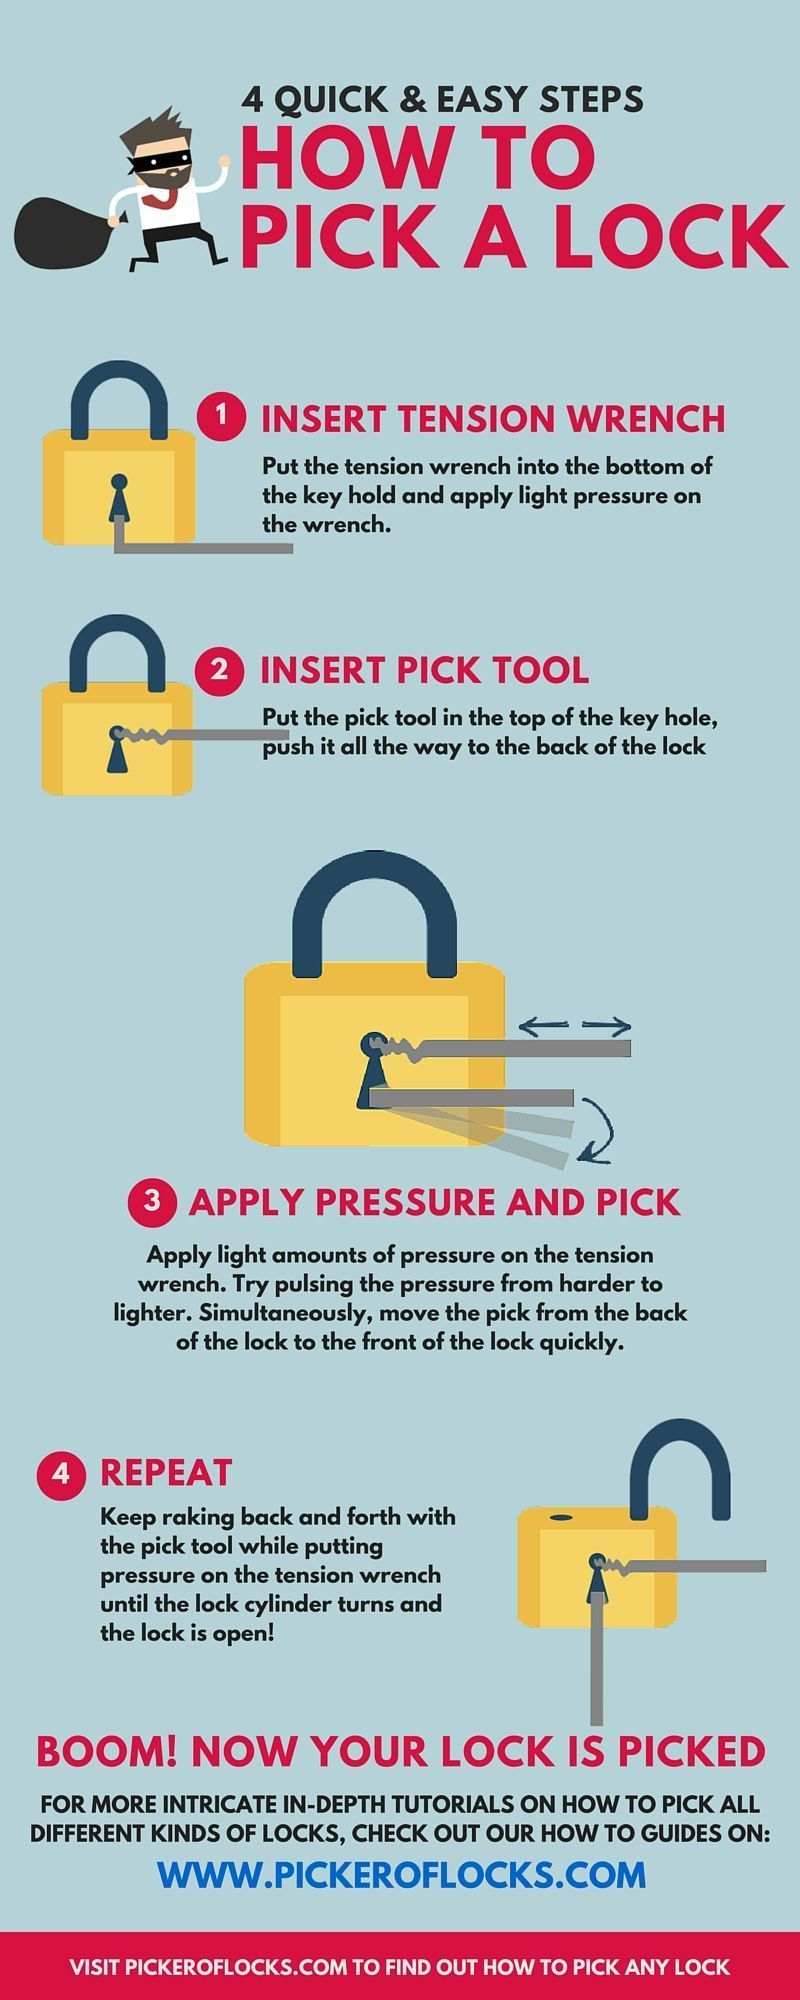 Infographic 4 Quick & Easy Ways to Pick a Lock in 2020